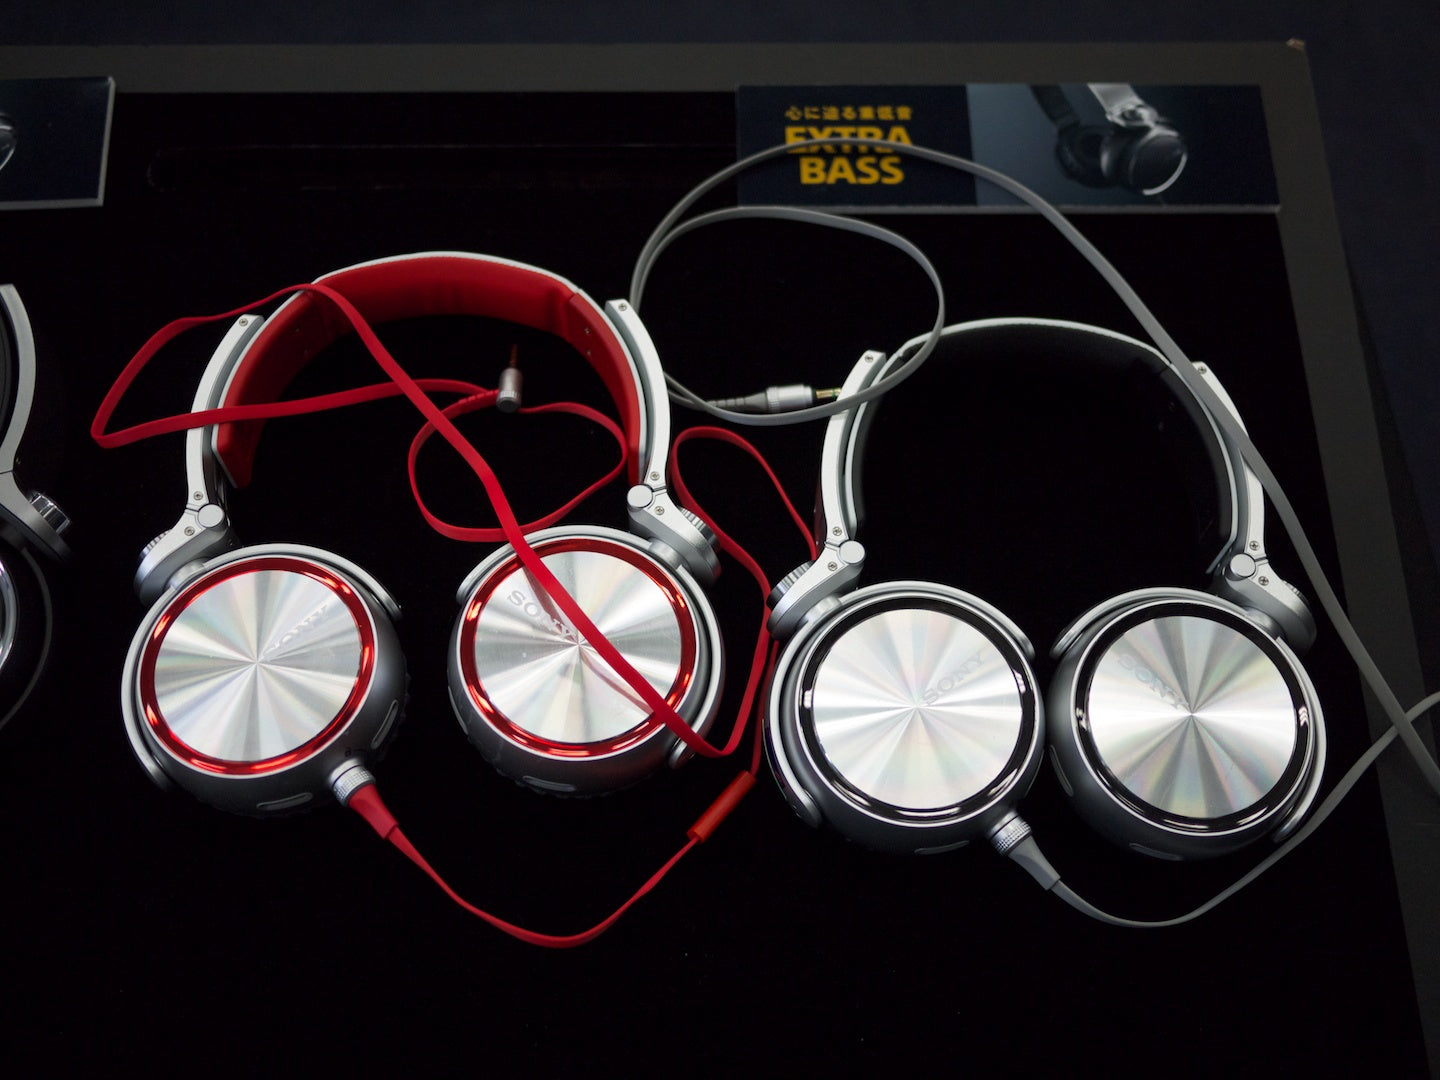 Sony's Extra Bass headphones display